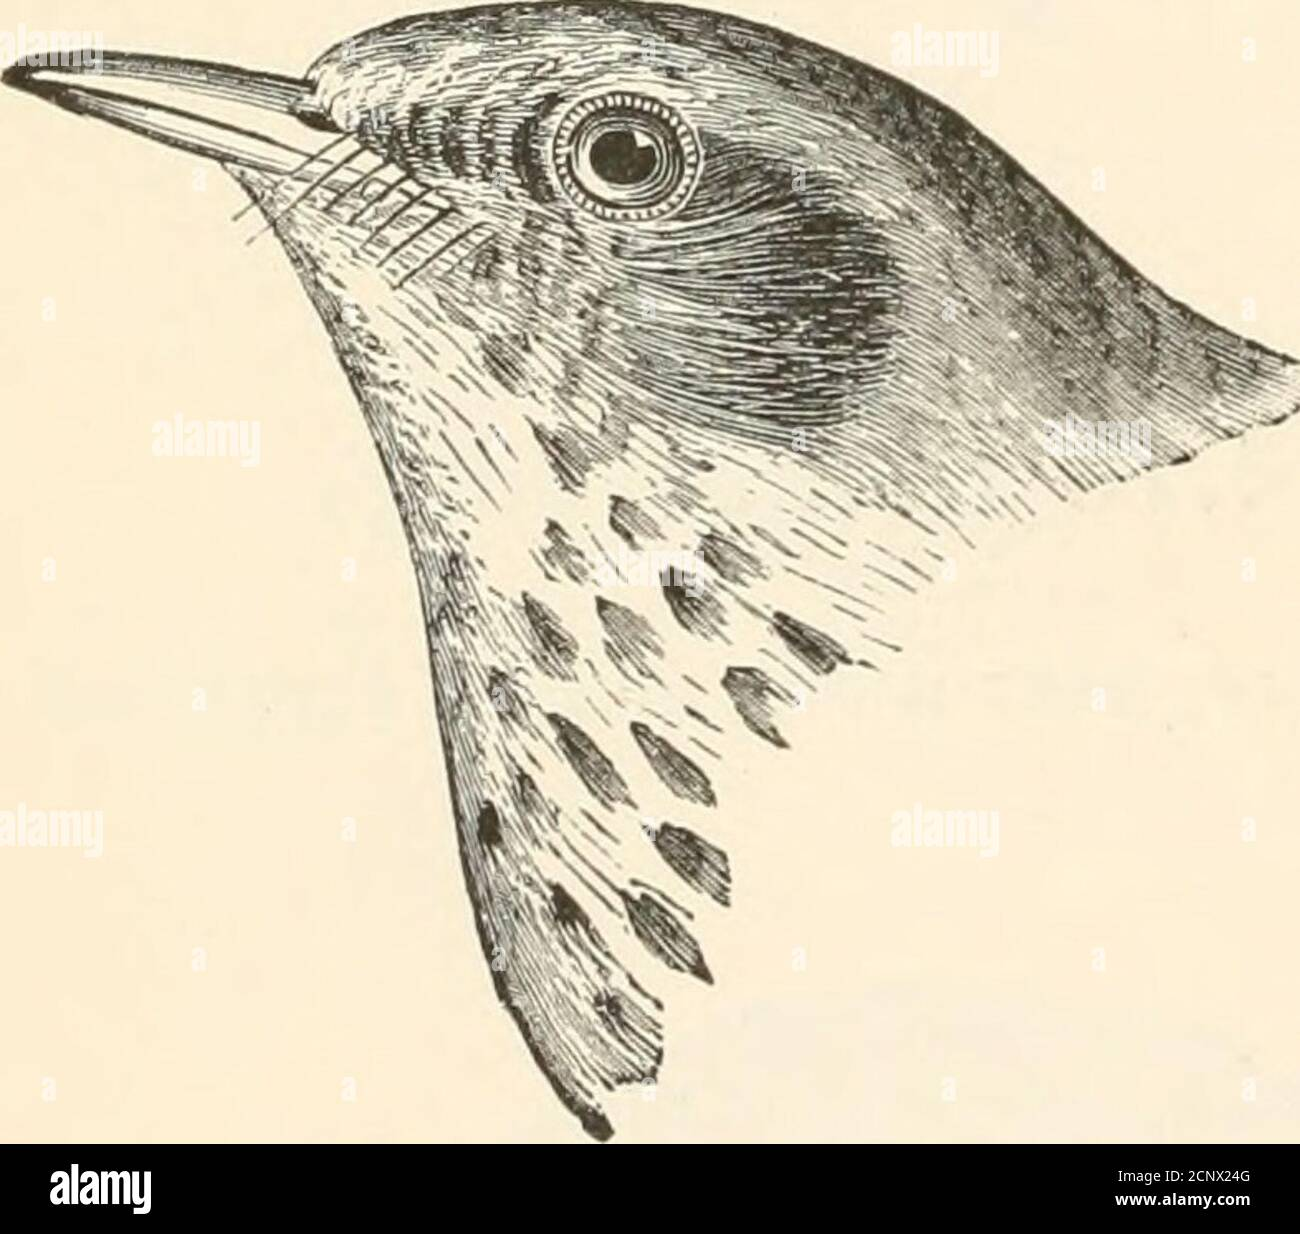 . The birds of eastern North America known to occur east of the nineteenth meridian .. . upper plumage, brownish olive; ends ofupper tail coverts <iud tail, rufous brown,much more rufous than the back; uo white ou tail; first primary, very smalland narrow. Hermit Thrush. Turdus aonalaschk(e pallasii.See No. 5G5.. Back, rump, and upper tail coverts, olive, about the same color; eye ringand lores, white, sometimes faintlytinged with buff, but the eye ring neverdecidedly buff, as in sxoainsoni; uo whiteon wing coverts. Qray-cheeked Thrush. Turdus alicke, and races.See No. 562. Stock Photo